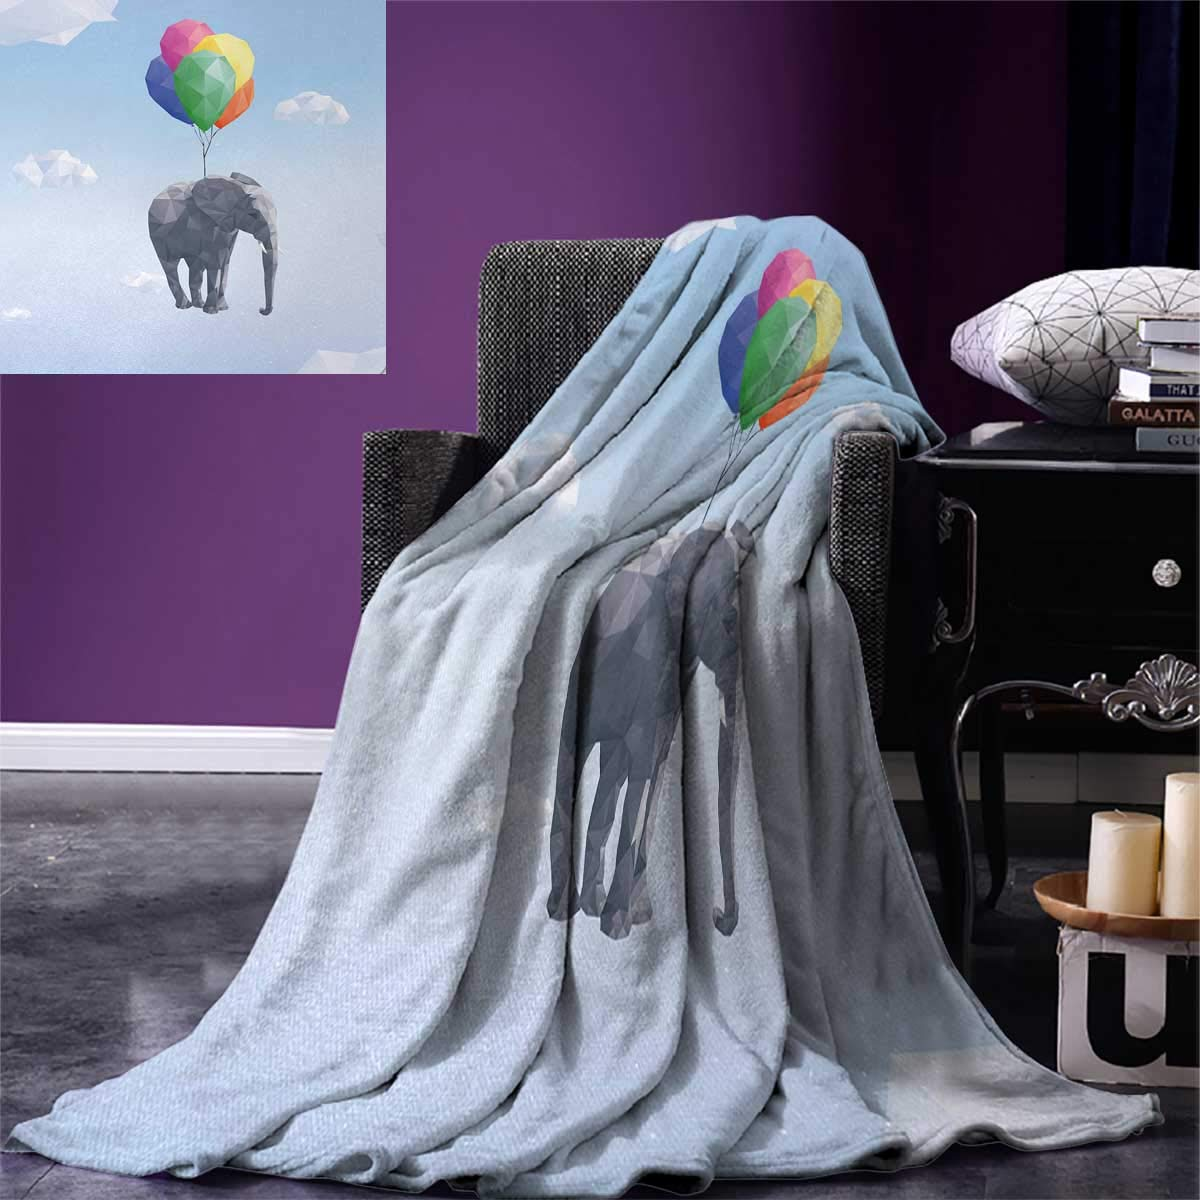 Animal Digital Printing Blanket Elephant Attached to Colorful Baloons in Sky Geometric Paper Effect Polygonal Art Summer Quilt Comforter 80''x60'' Multicolor